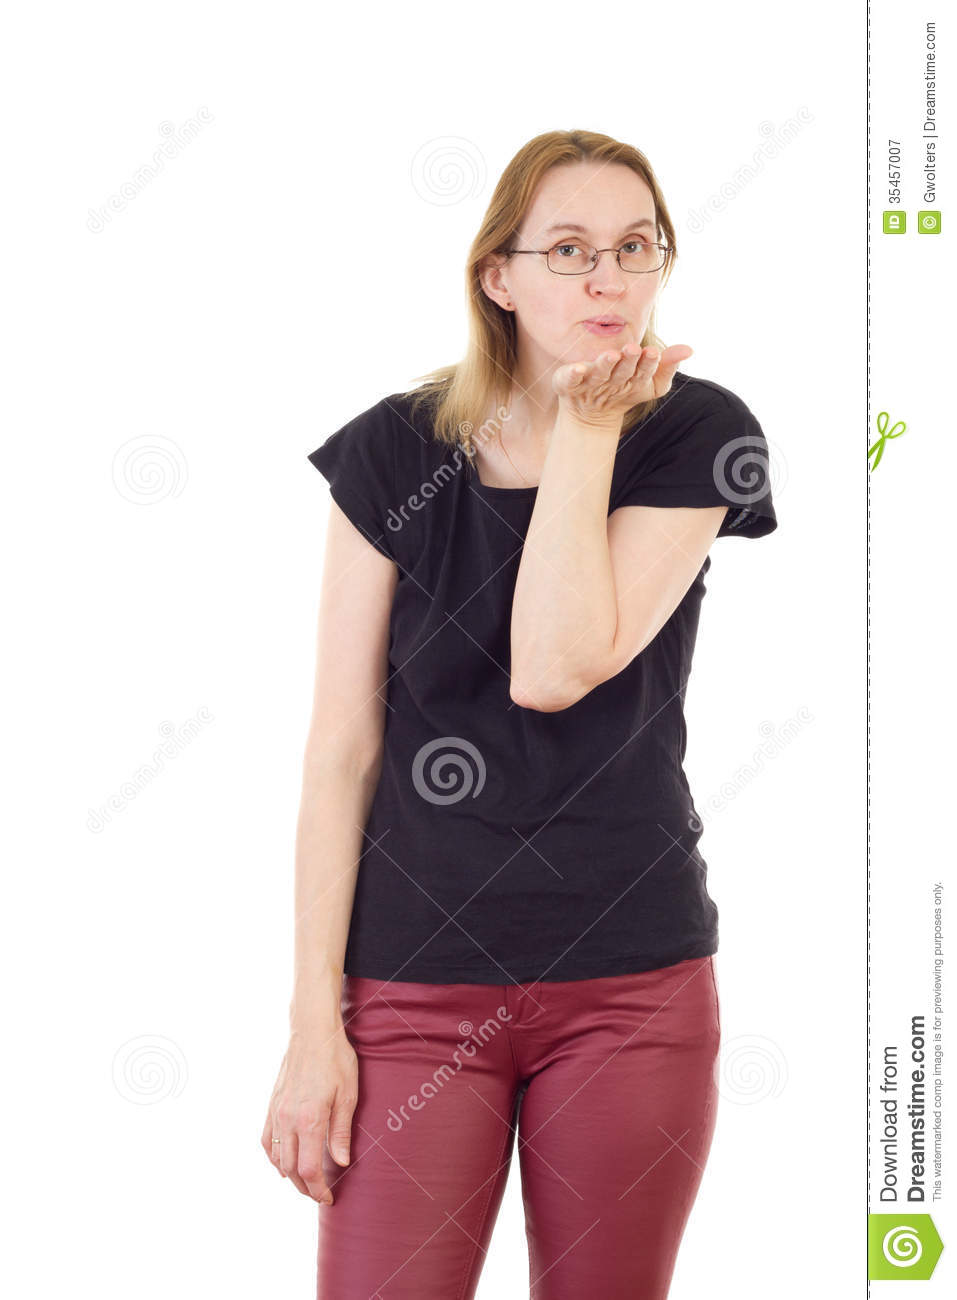 Woman Blowing Kisses To You Stock Image - Image of claret ...